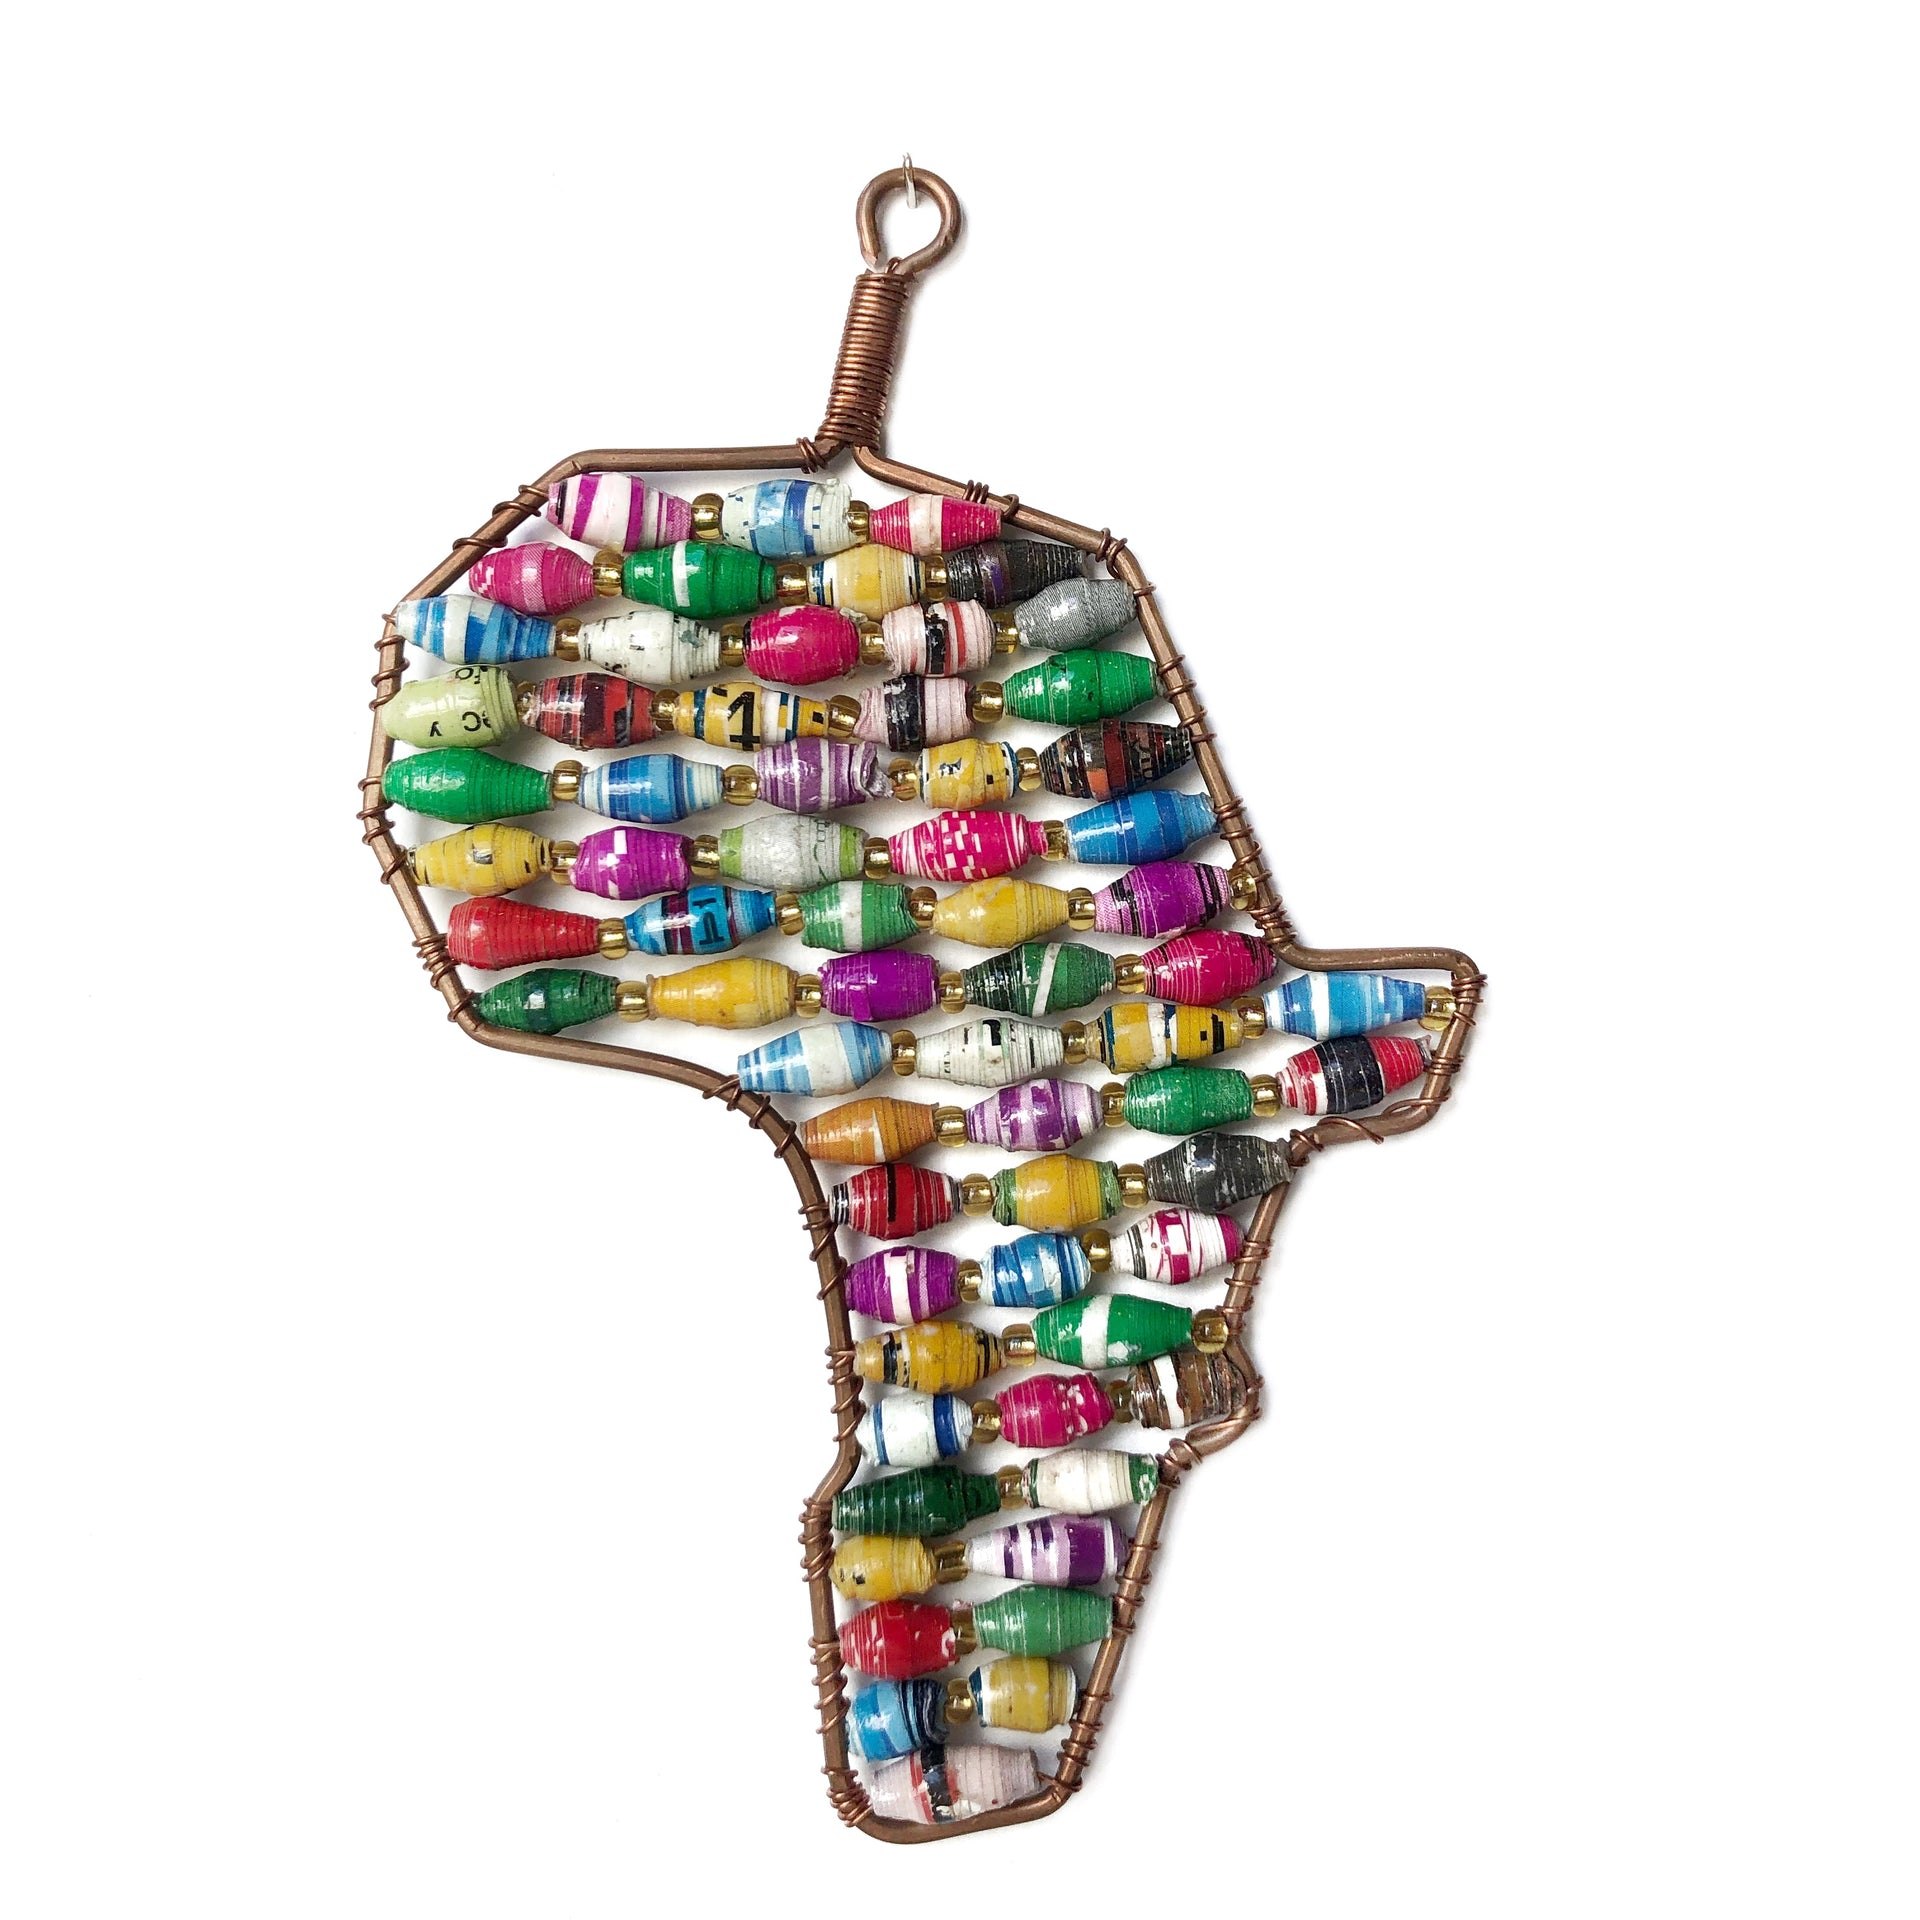 Paper Bead Africa Ornament Handmade Fair Trade